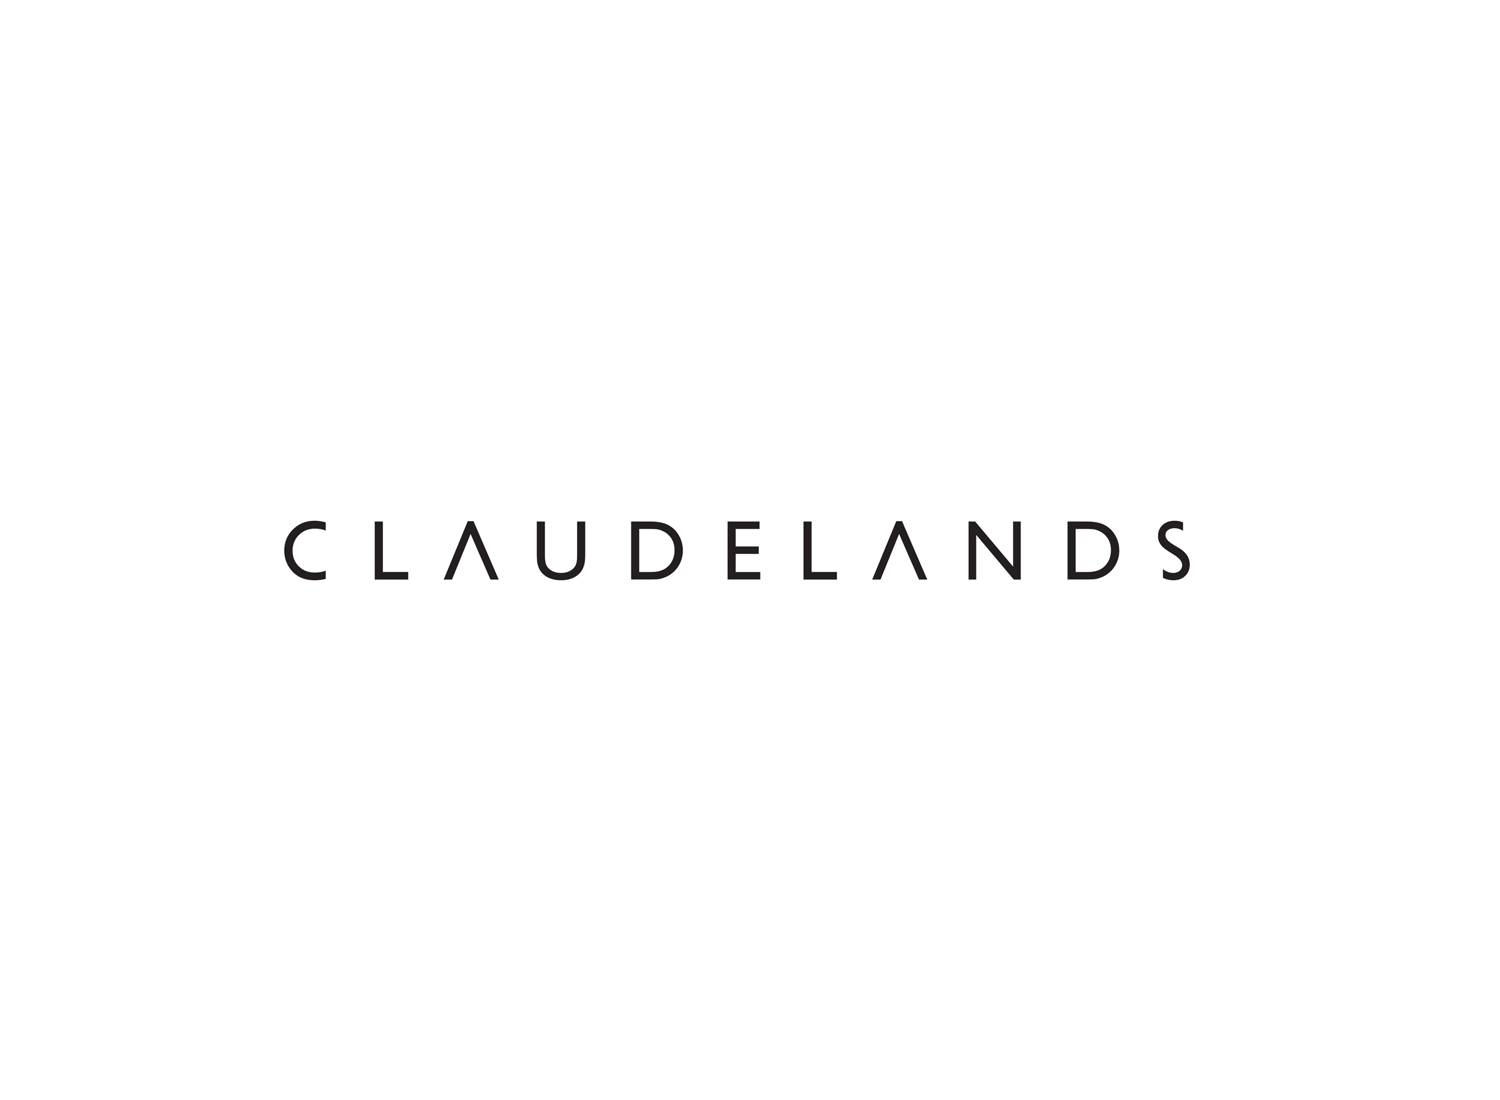 CLAUDELANDS_LOGO.jpg